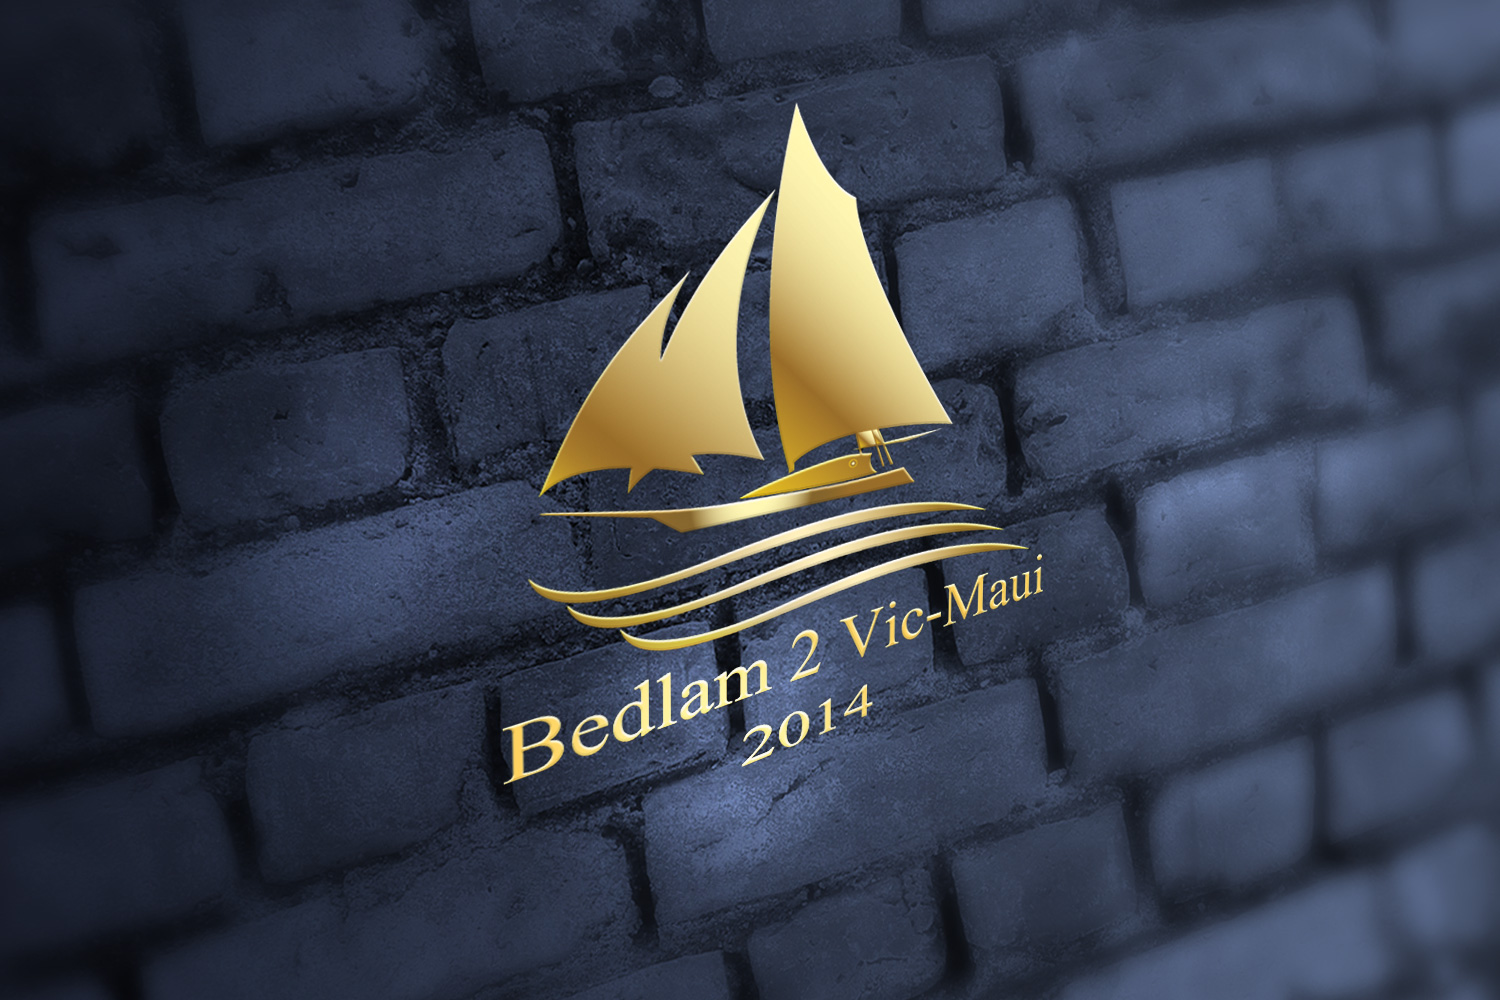 Logo Design by Adnan Younus - Entry No. 23 in the Logo Design Contest Artistic Logo Design for Bedlam 2  Vic-Maui 2014.